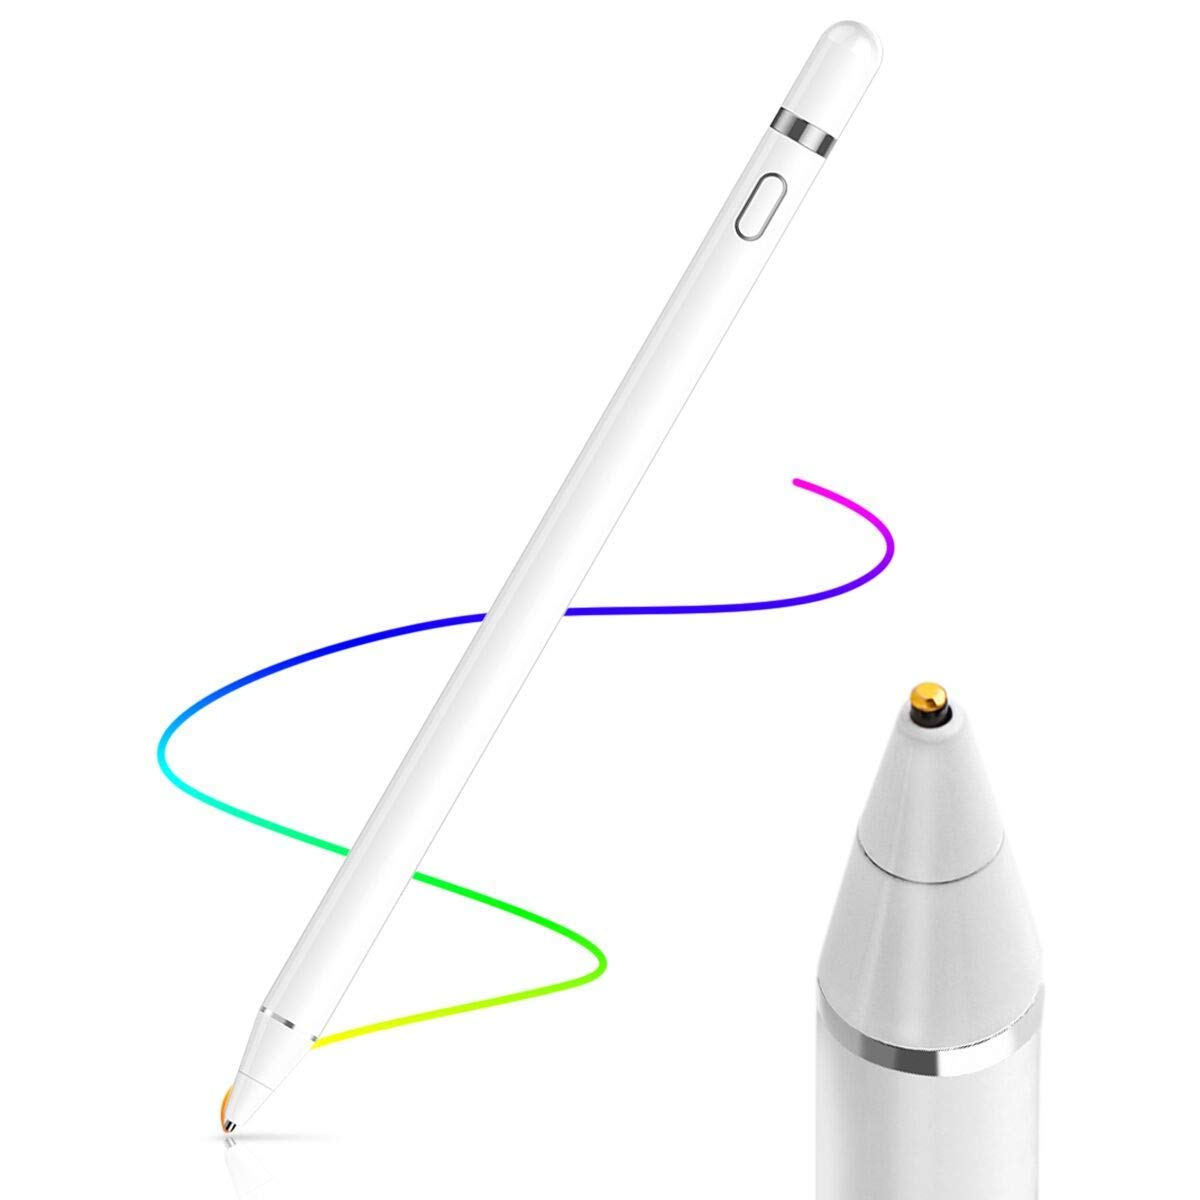 AICase Active Stylus Pen 1.45mm High Precision and Sensitivity Point Capacitive Stylus Compatible for Phone iPad Pro iPad Air 2 Tablets, Work at iOS and Android Capacitive Touchscreen